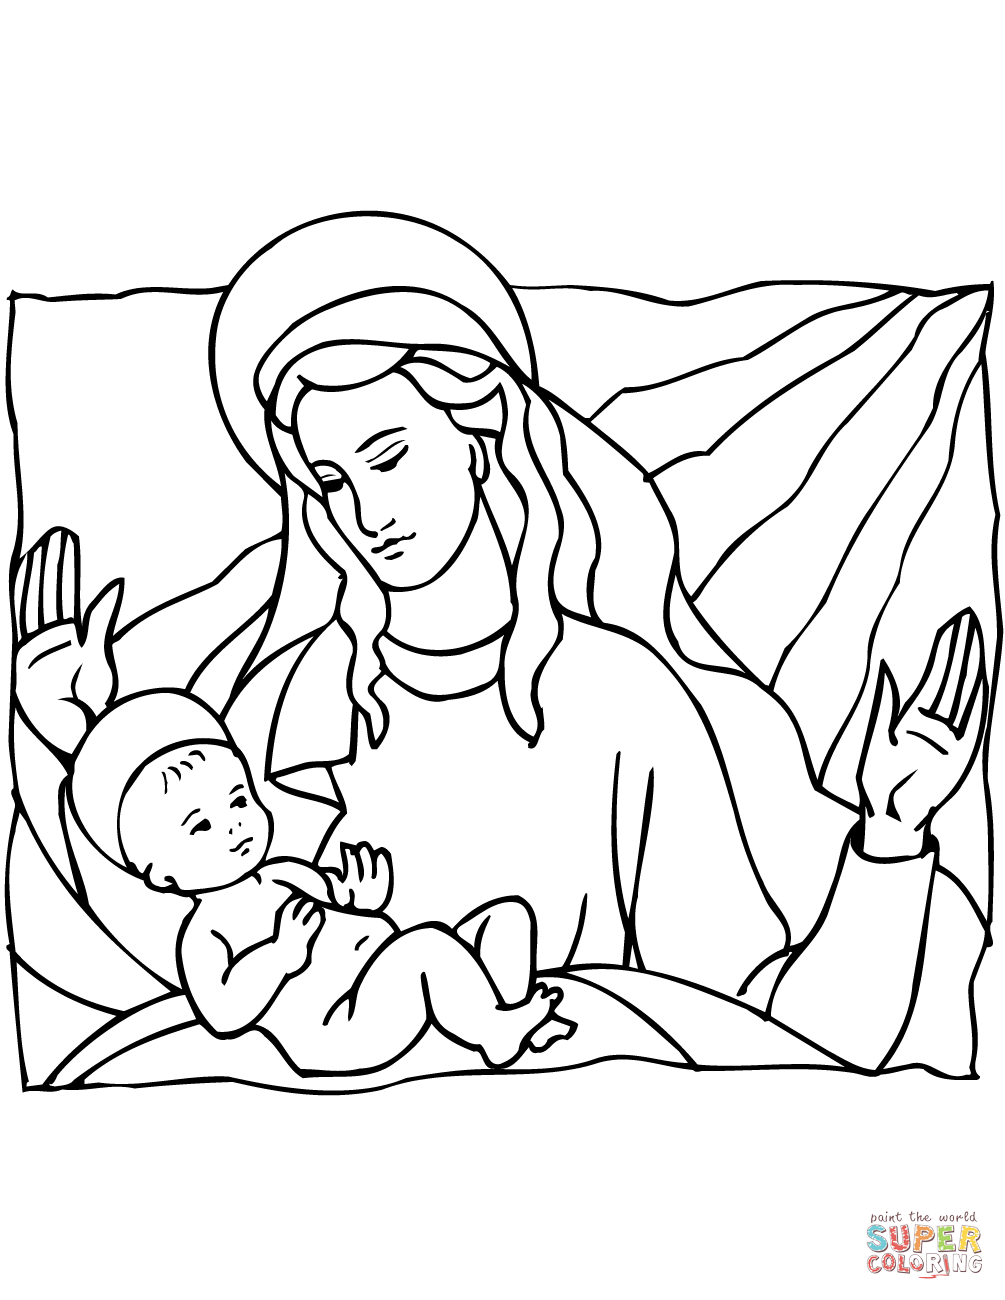 Christmas Coloring Pages Of Baby Jesus In A Manger With Mary And Page Free Printable